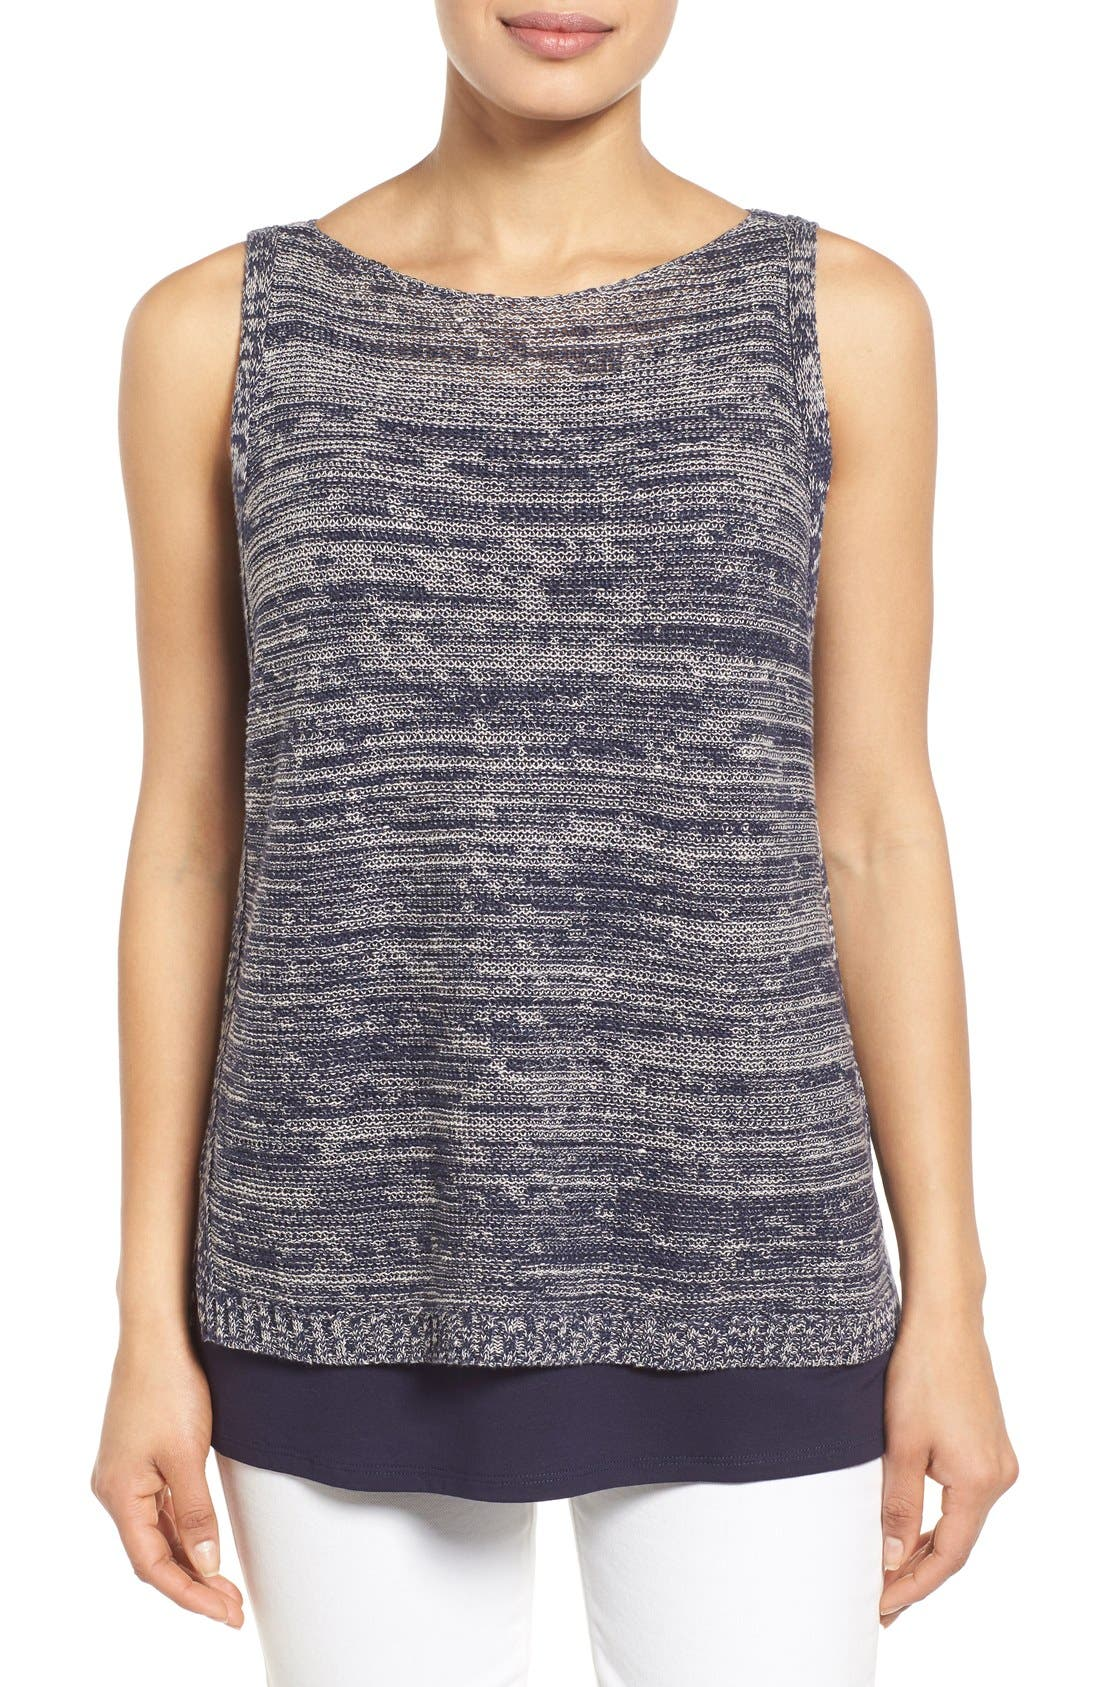 Alternate Image 1 Selected - Eileen Fisher Organic Linen Knit Bateau Neck High/Low Shell